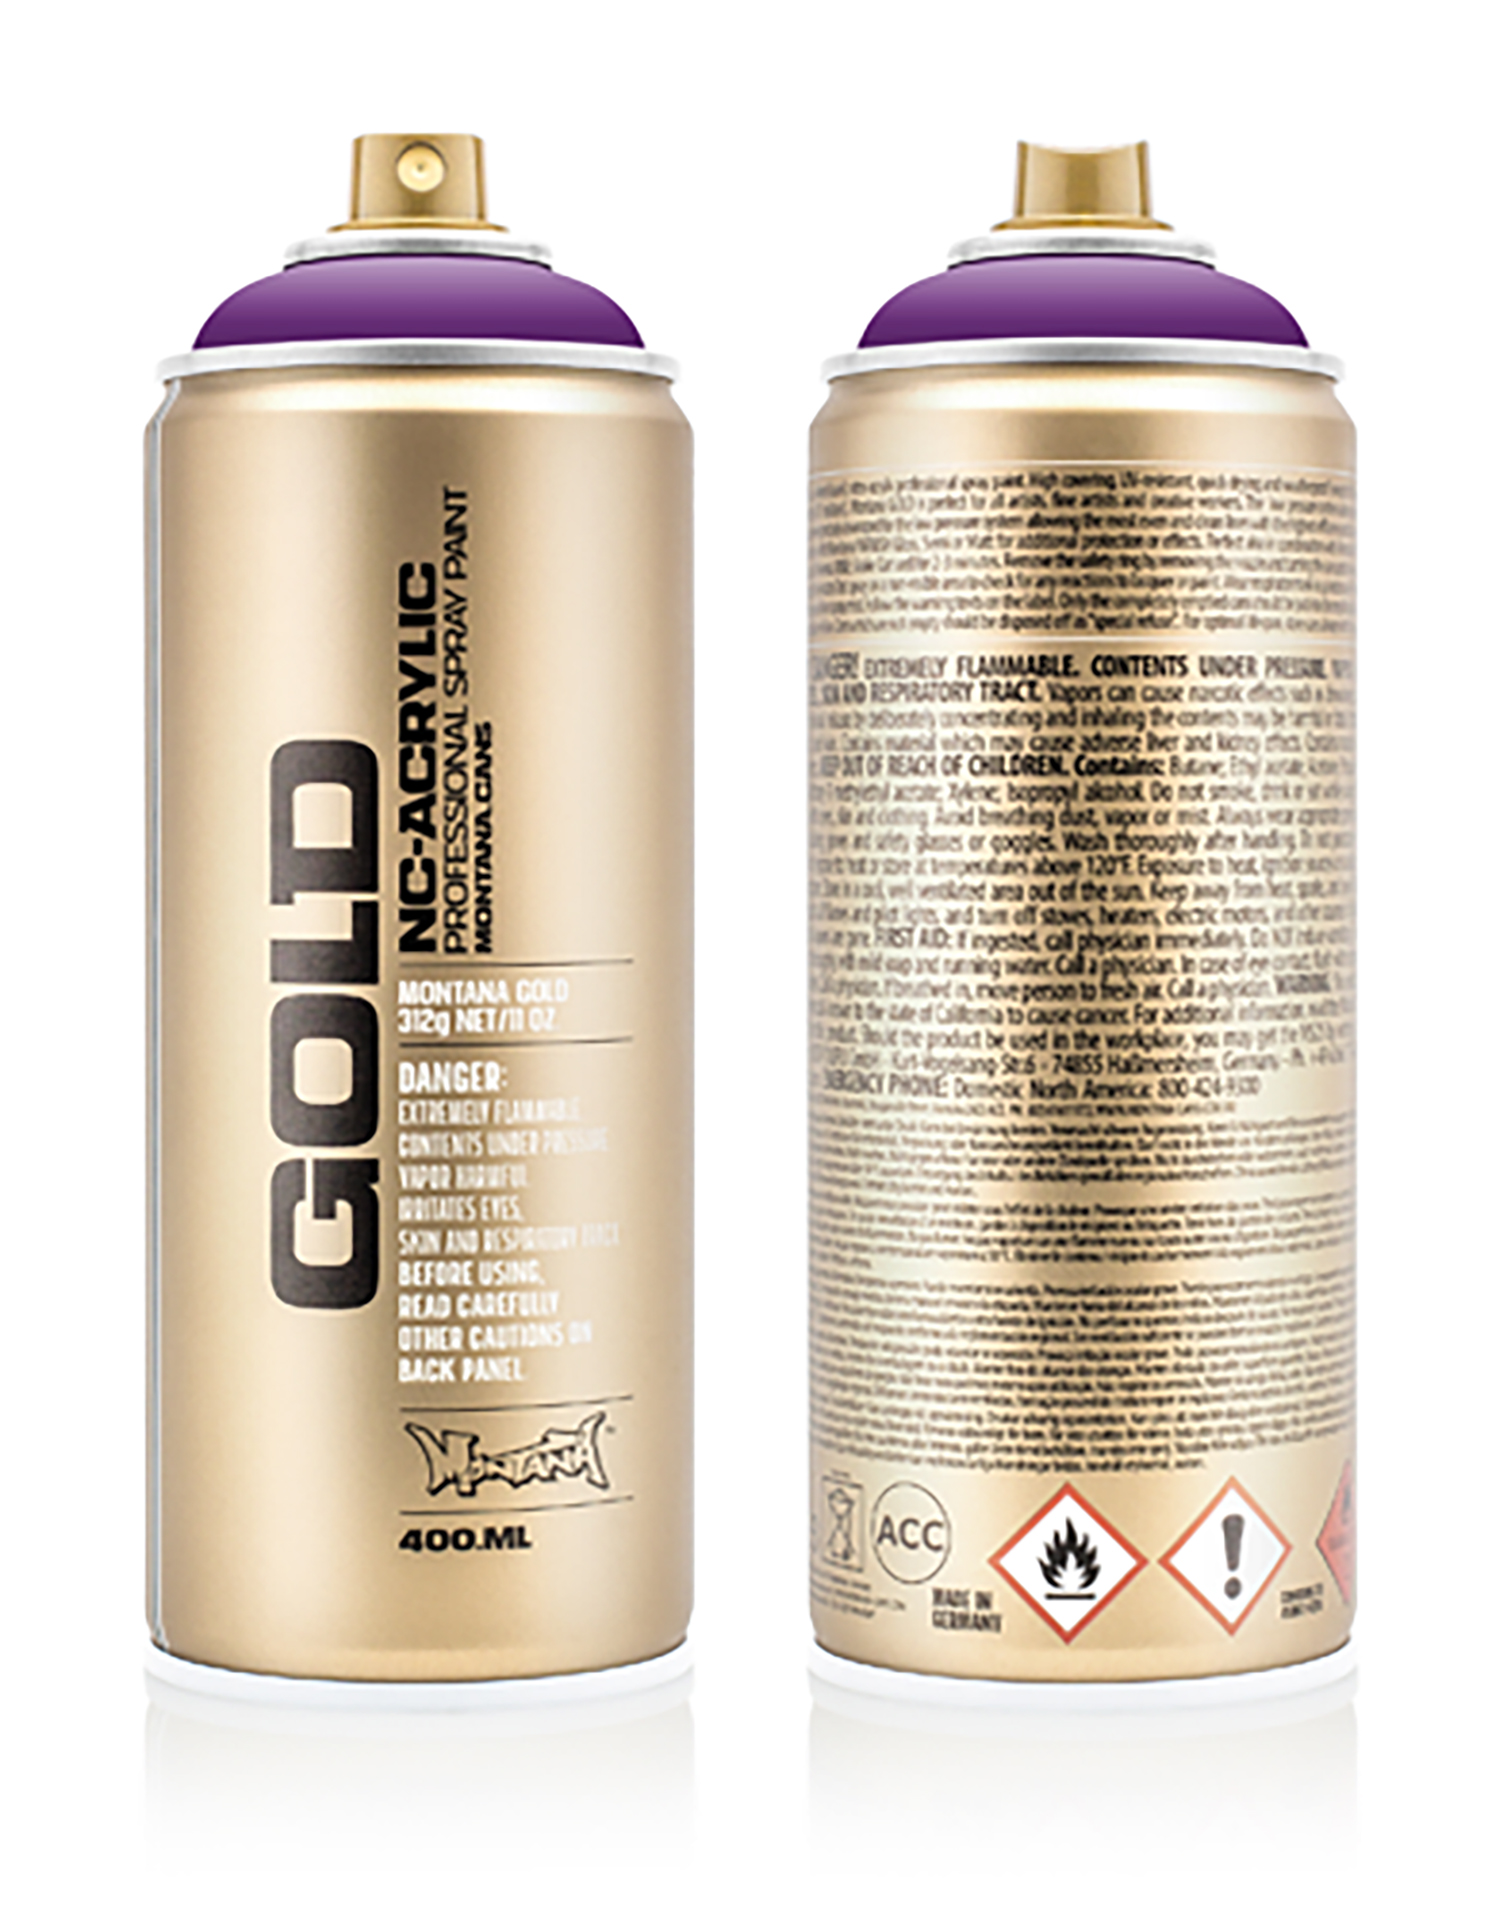 MONTANA-GOLD-SPRAY-400ML-G-4230